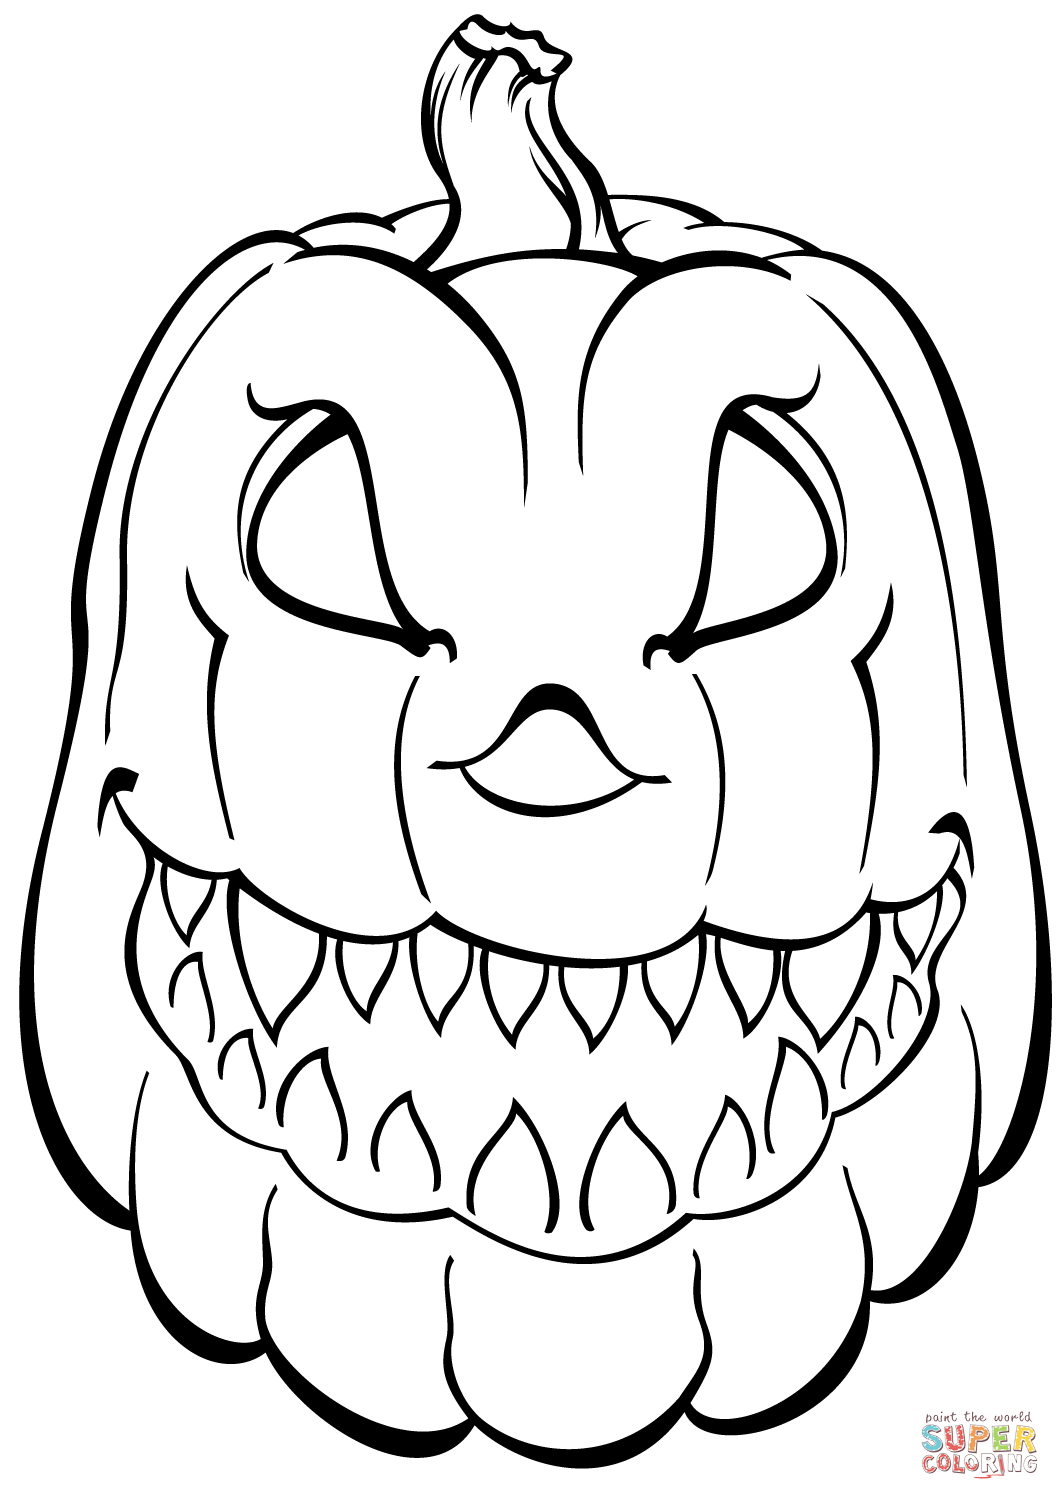 Printable Pumpkin Coloring Pages Scary Pumpkin Coloring ...